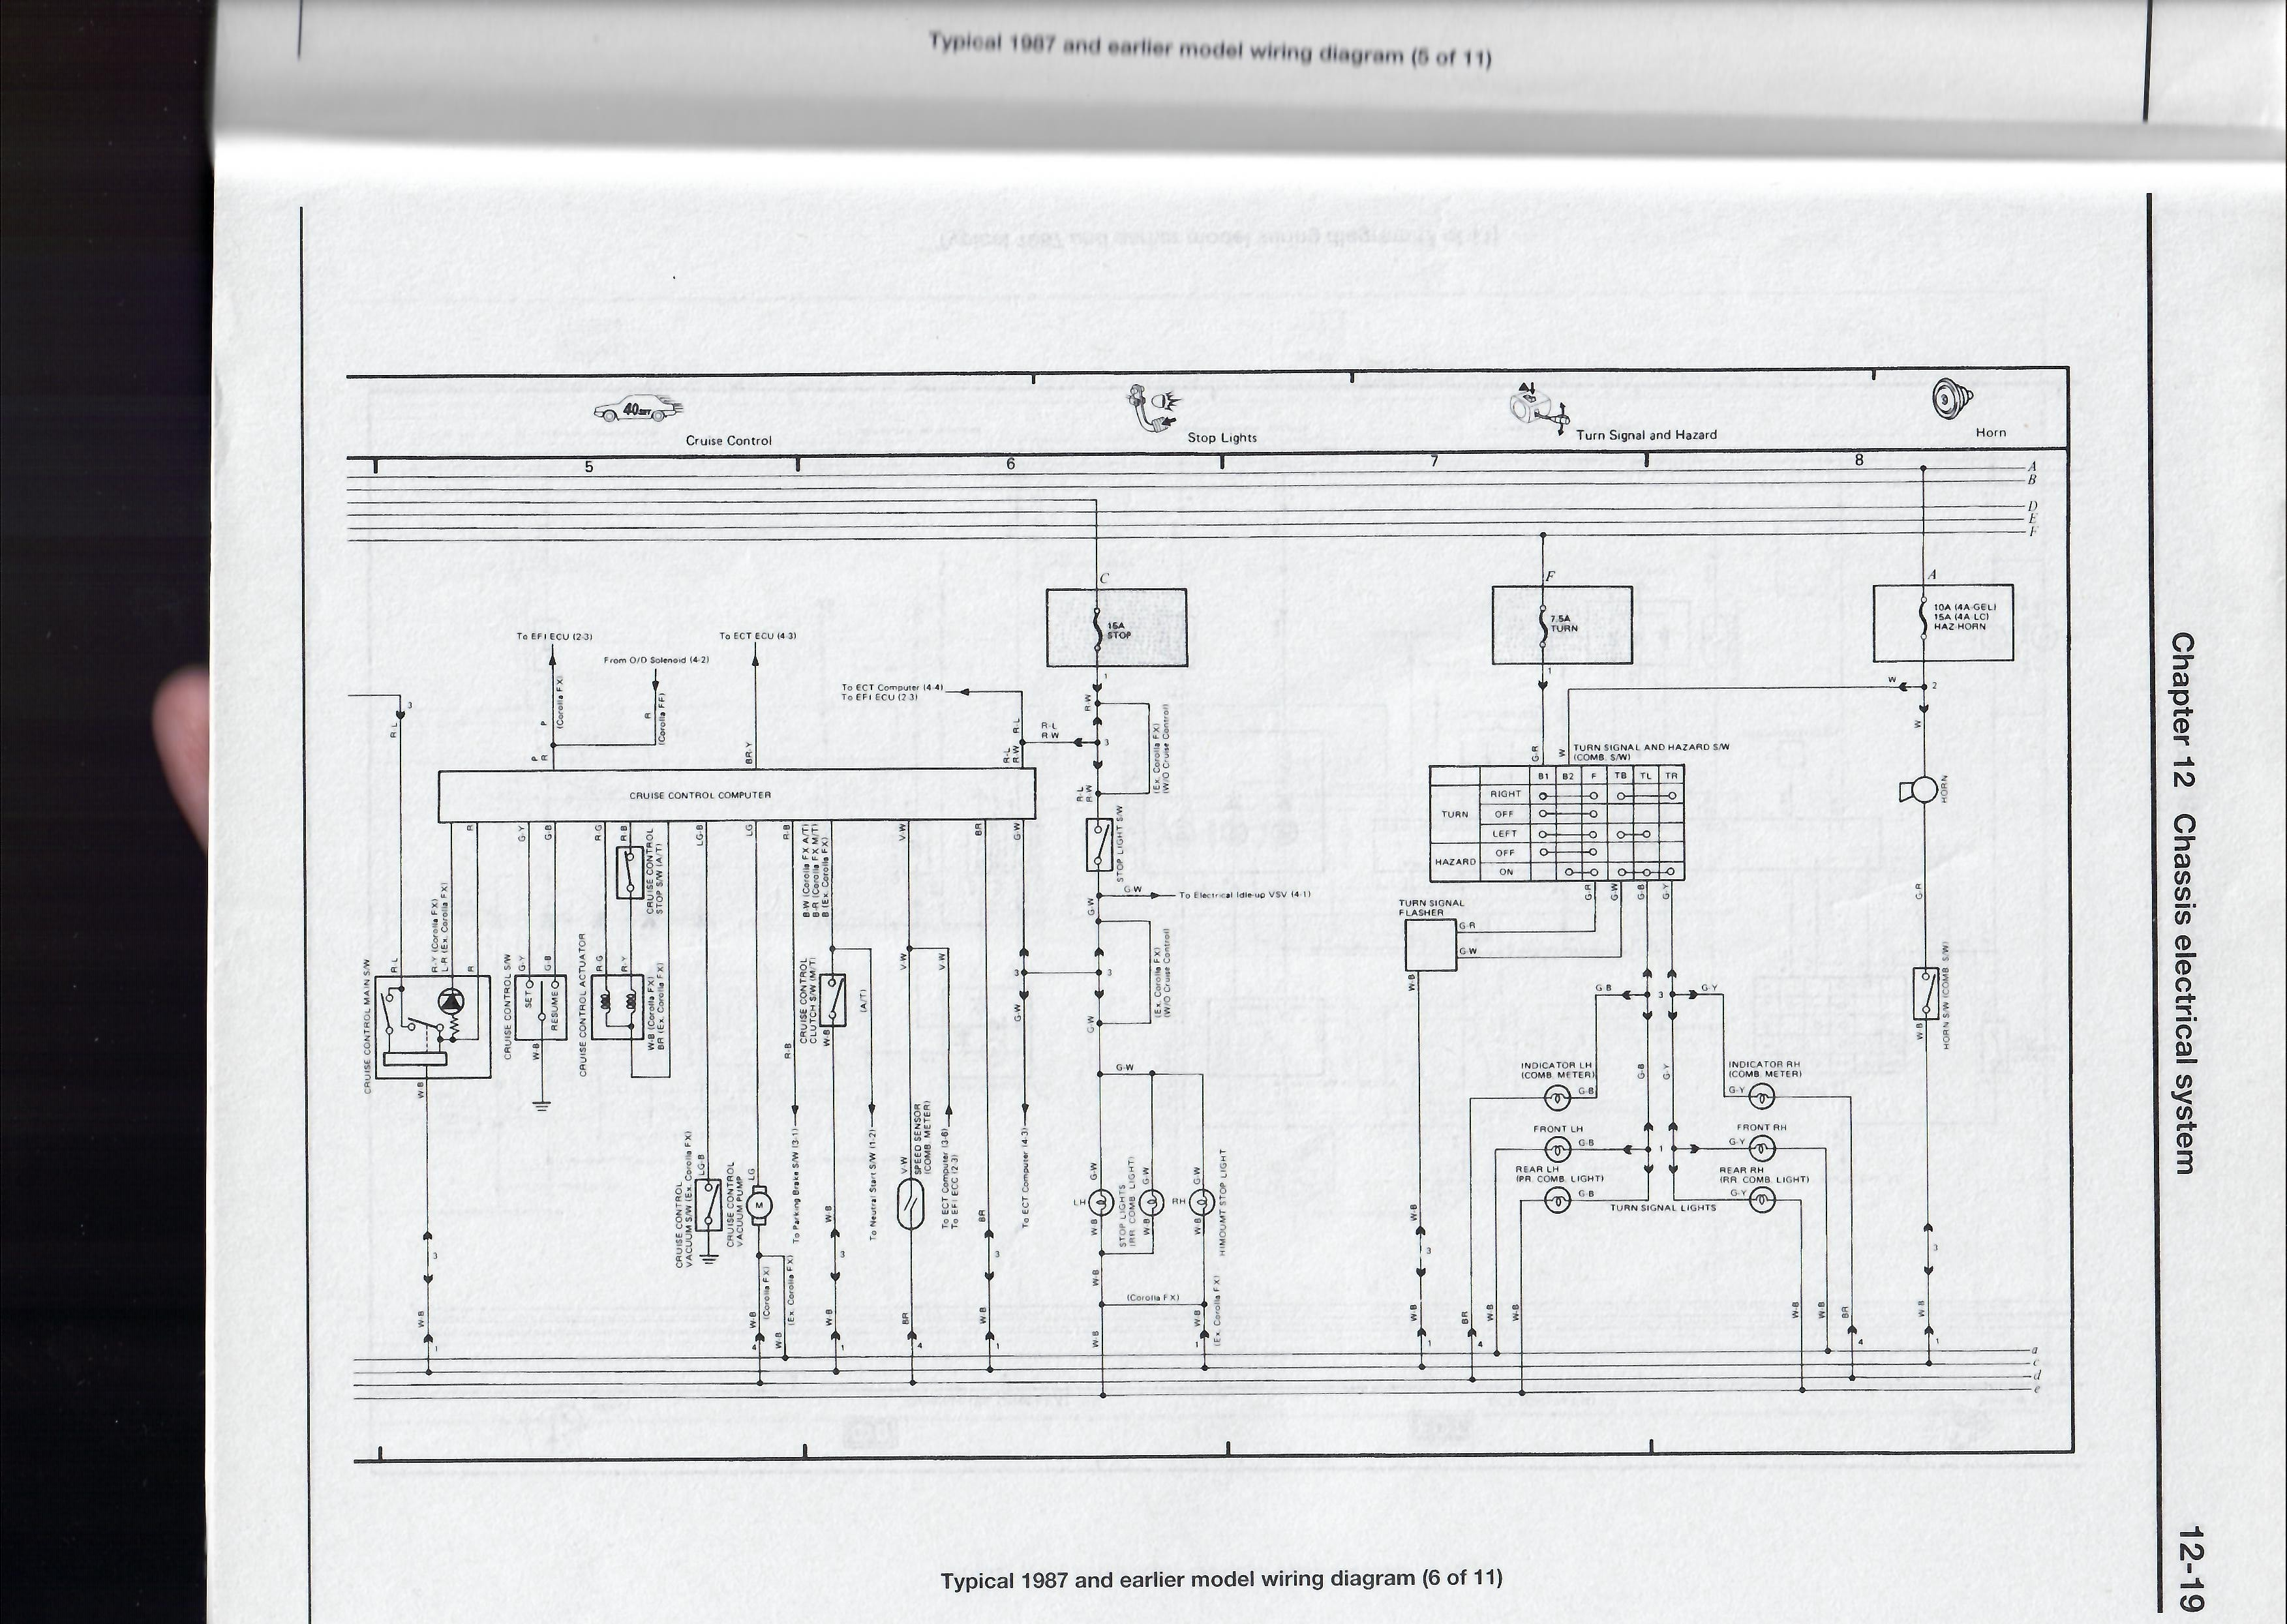 I Need Electrical Wiring Diagram And Service Manual Of E80